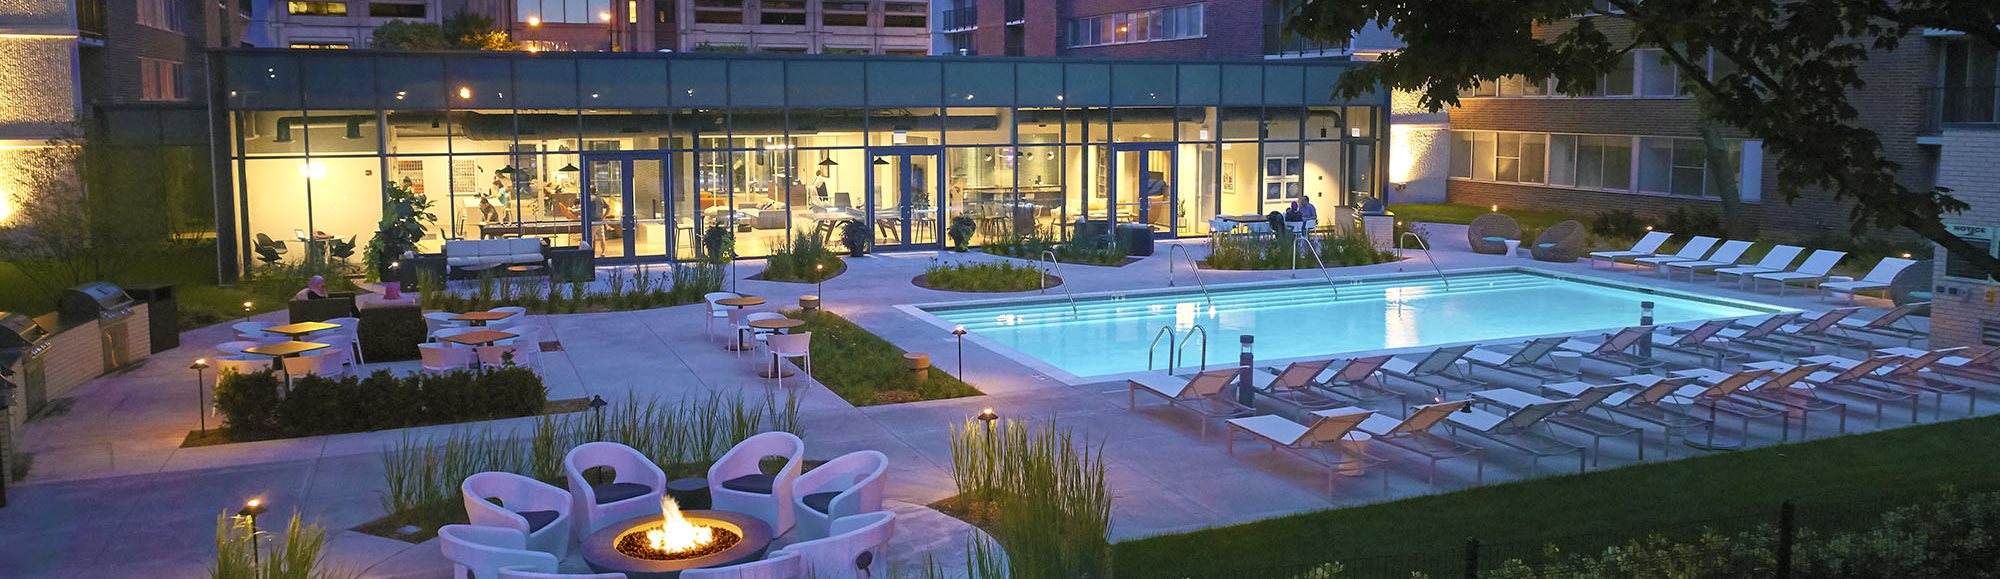 Scio Chicago Pool